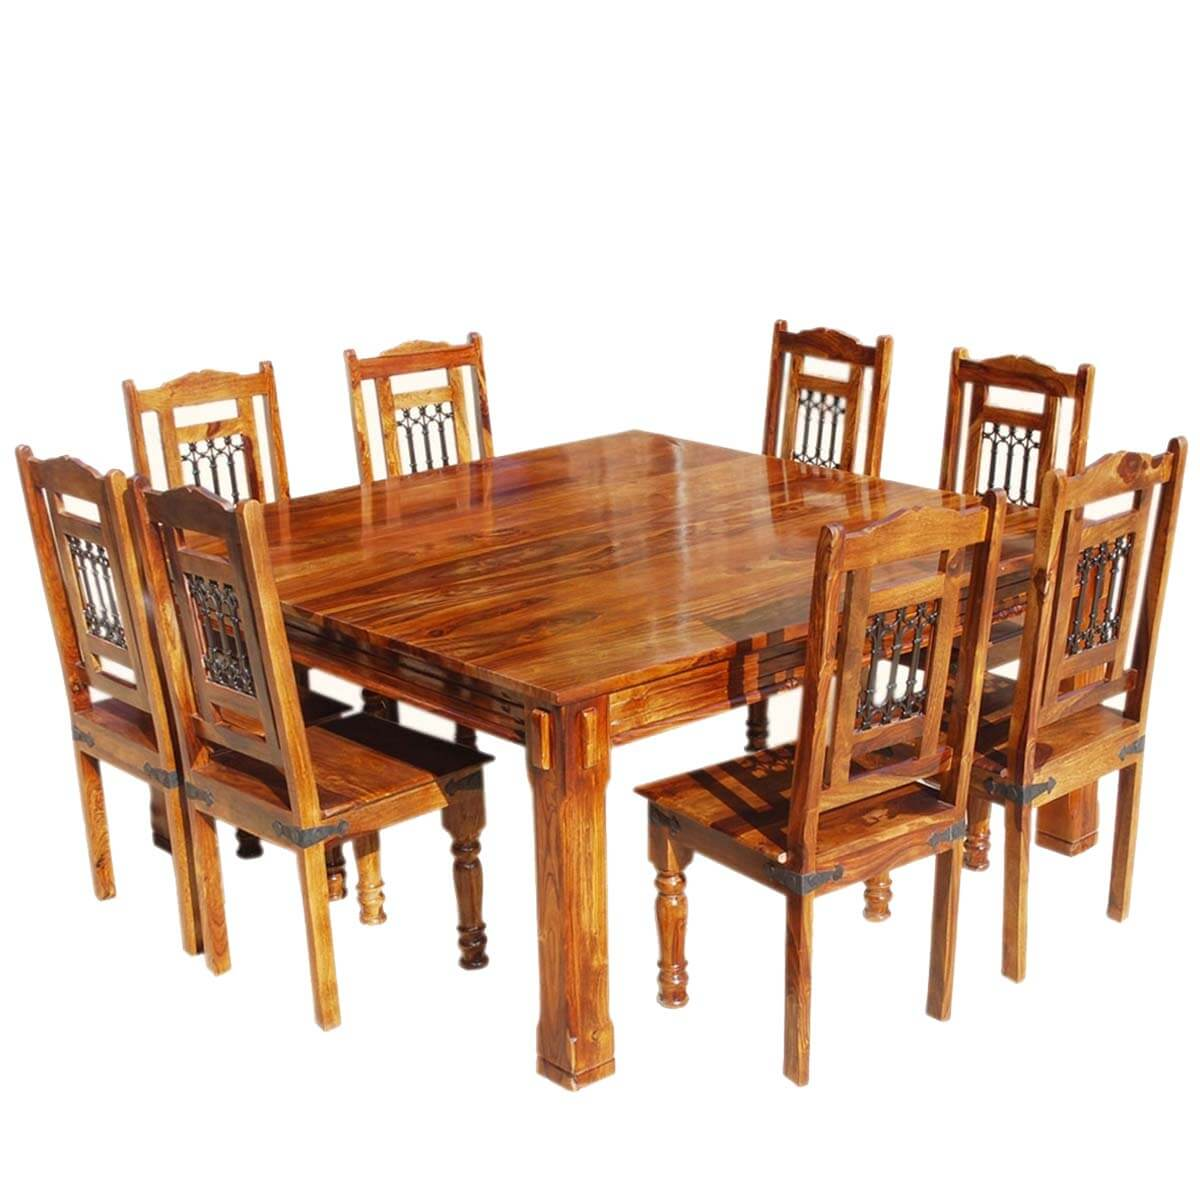 Transitional solid wood rustic square dining table chairs set for Wooden dining table set